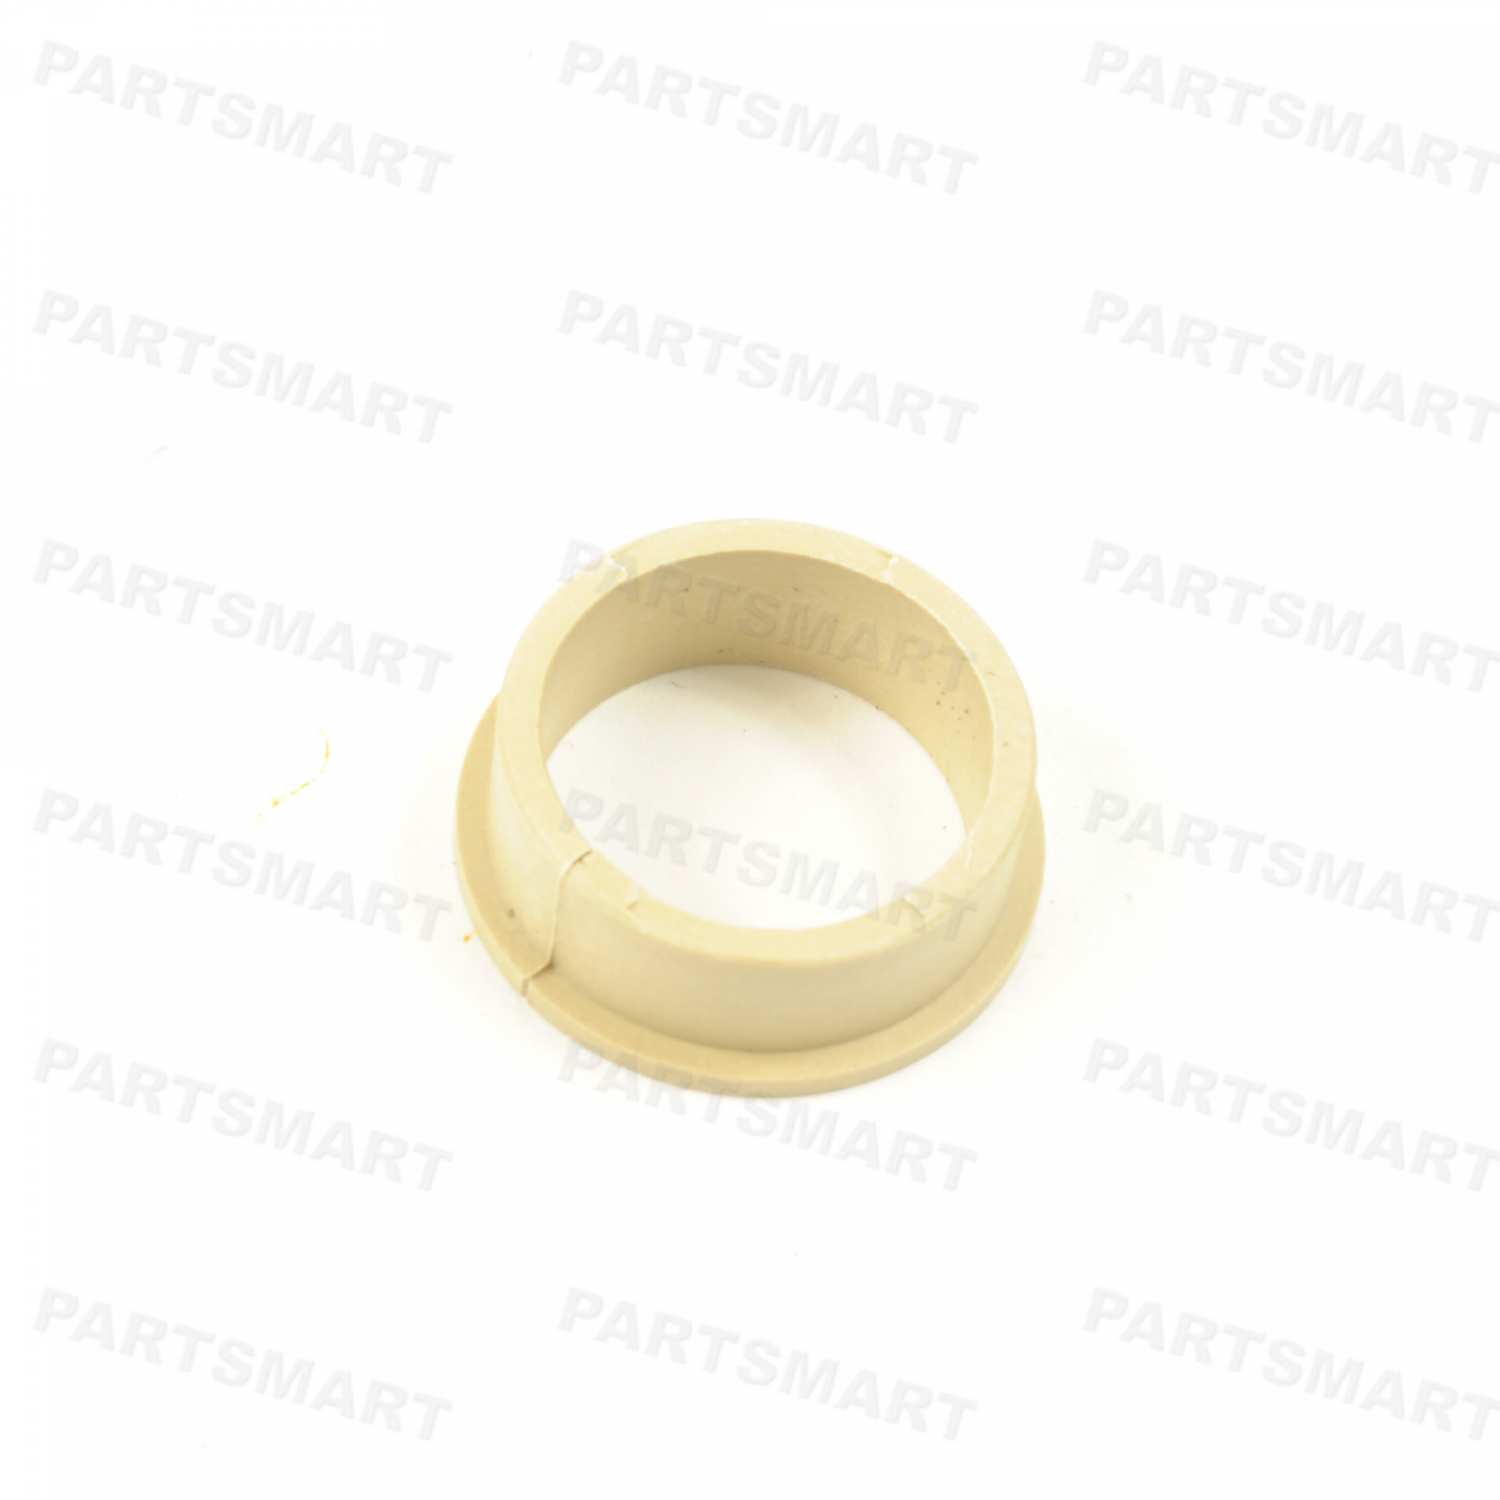 BSH-9000-LOW Bushing, Pressure Roller for HP LaserJet 9000